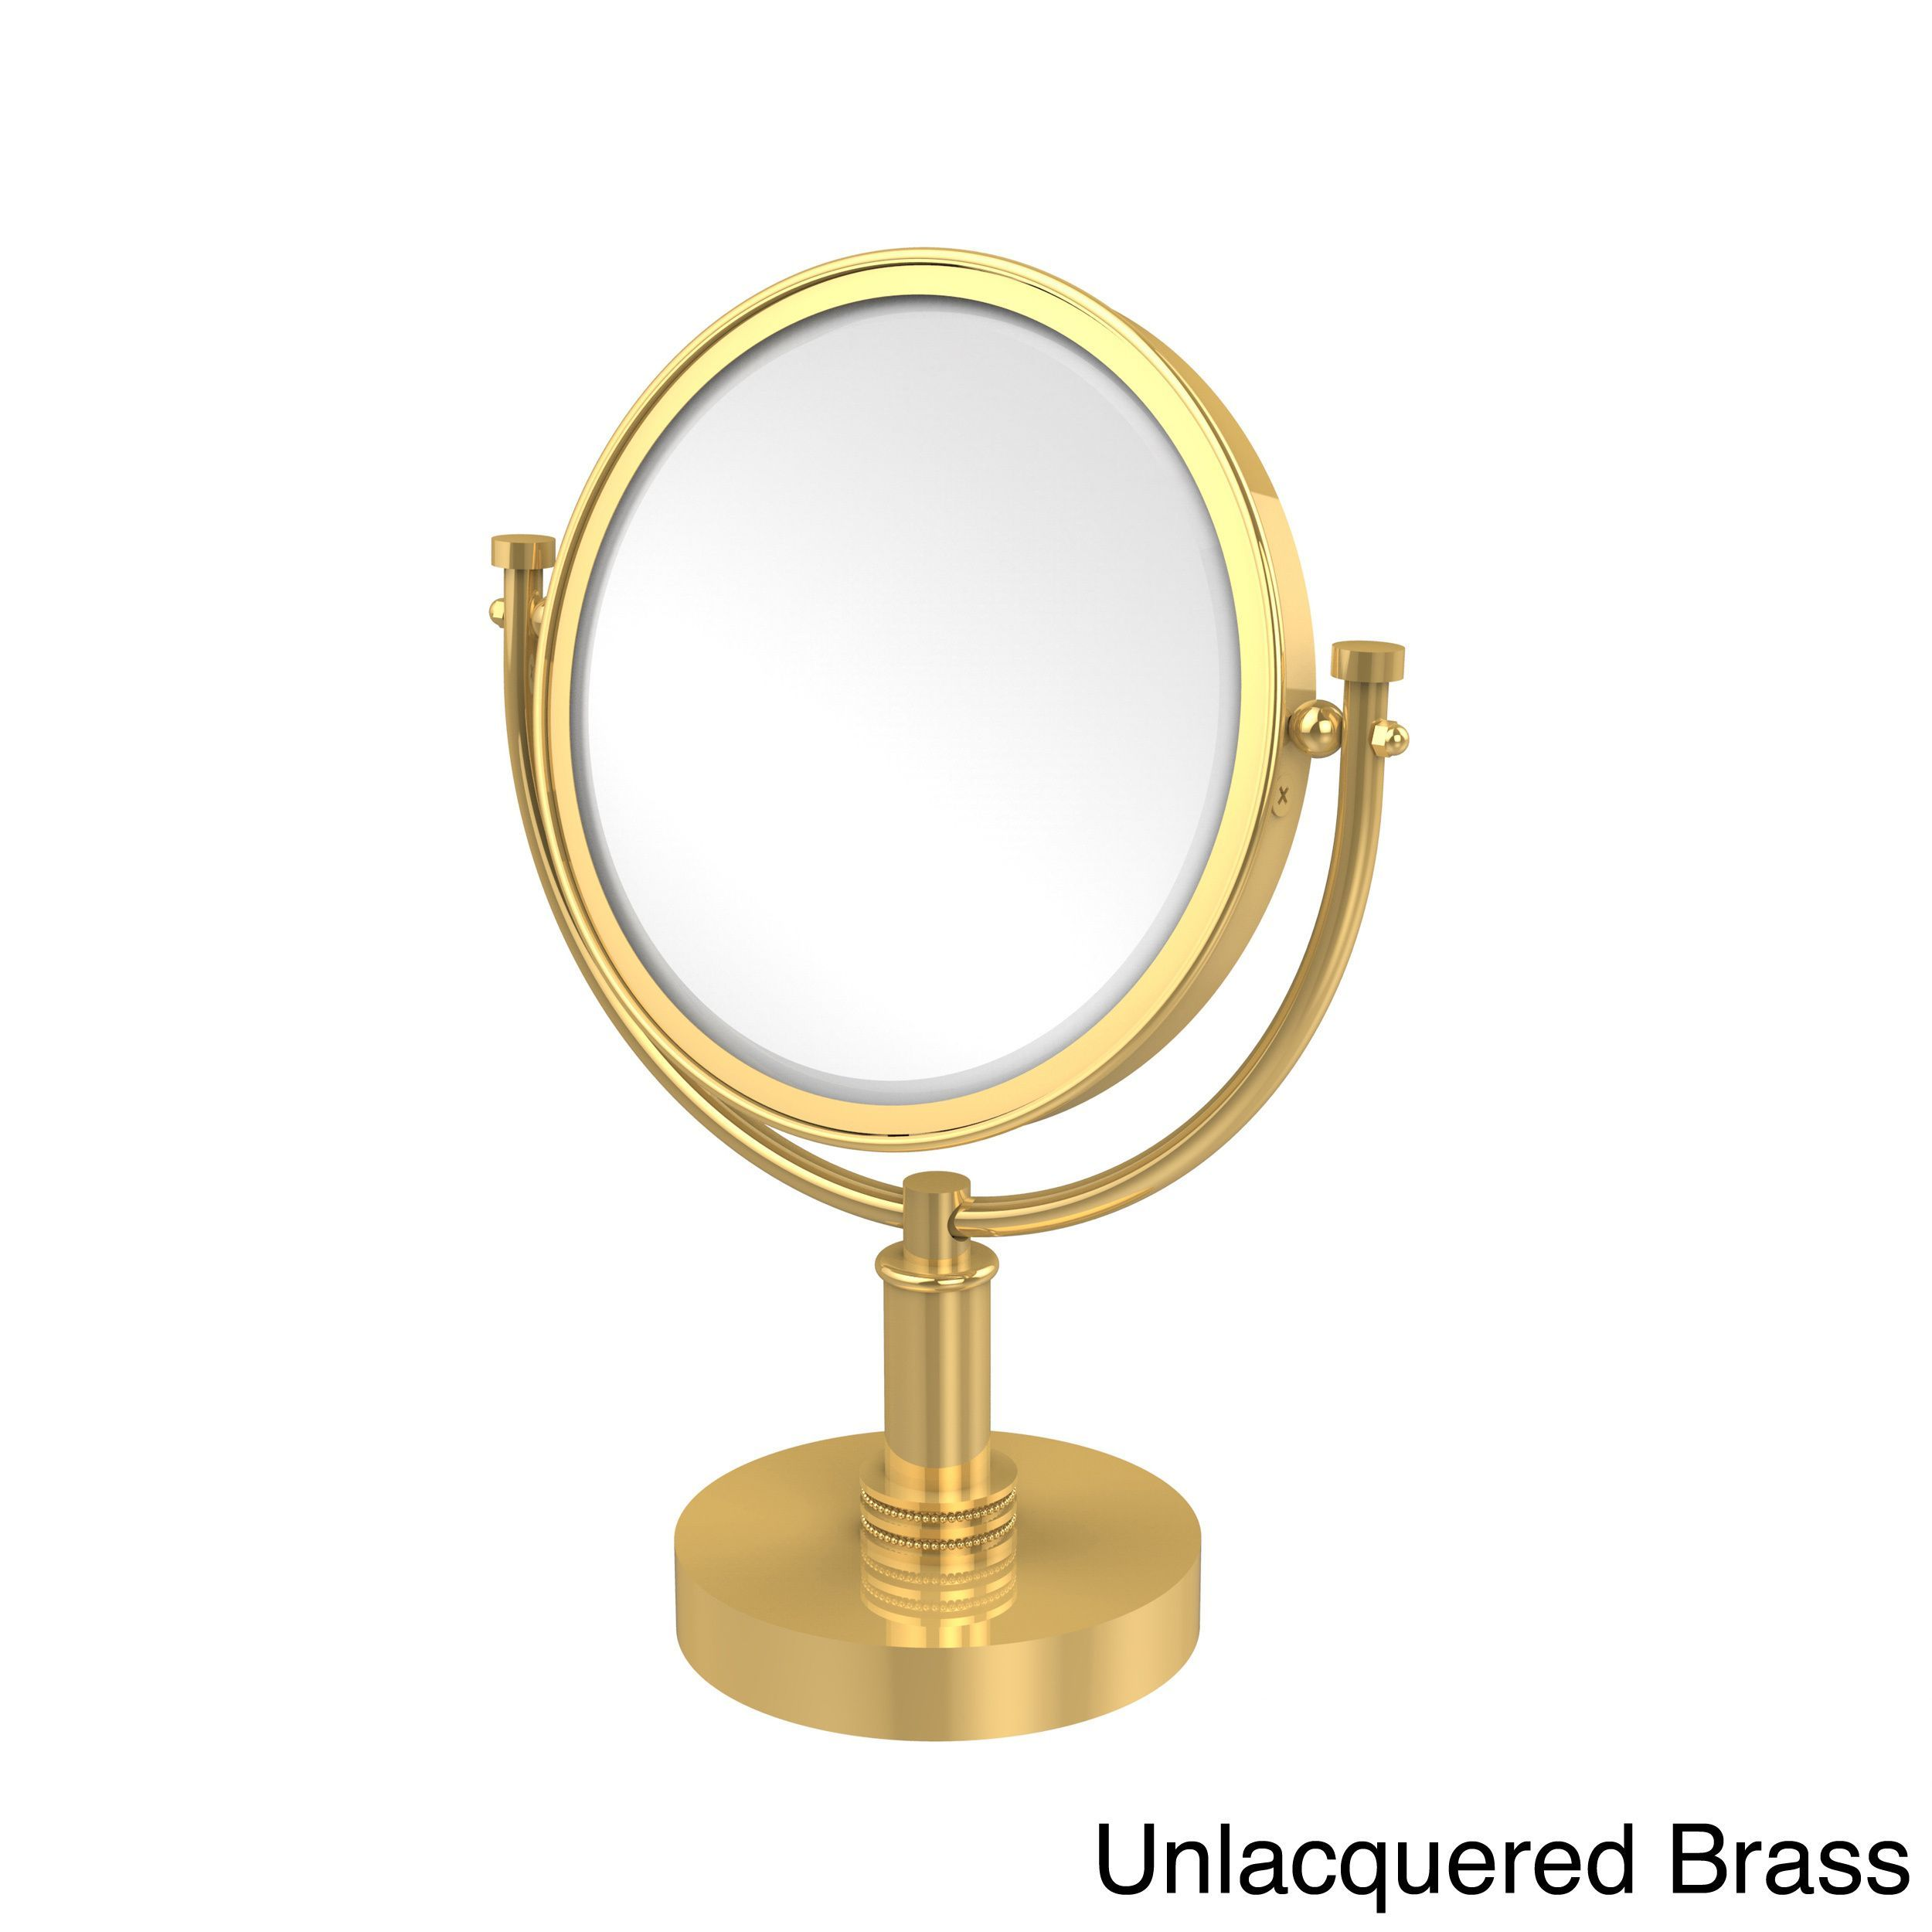 Allied Brass 8-inch 4x Magnification Vanity Top Make-up Mirror (Unlacquered Brass), Clear